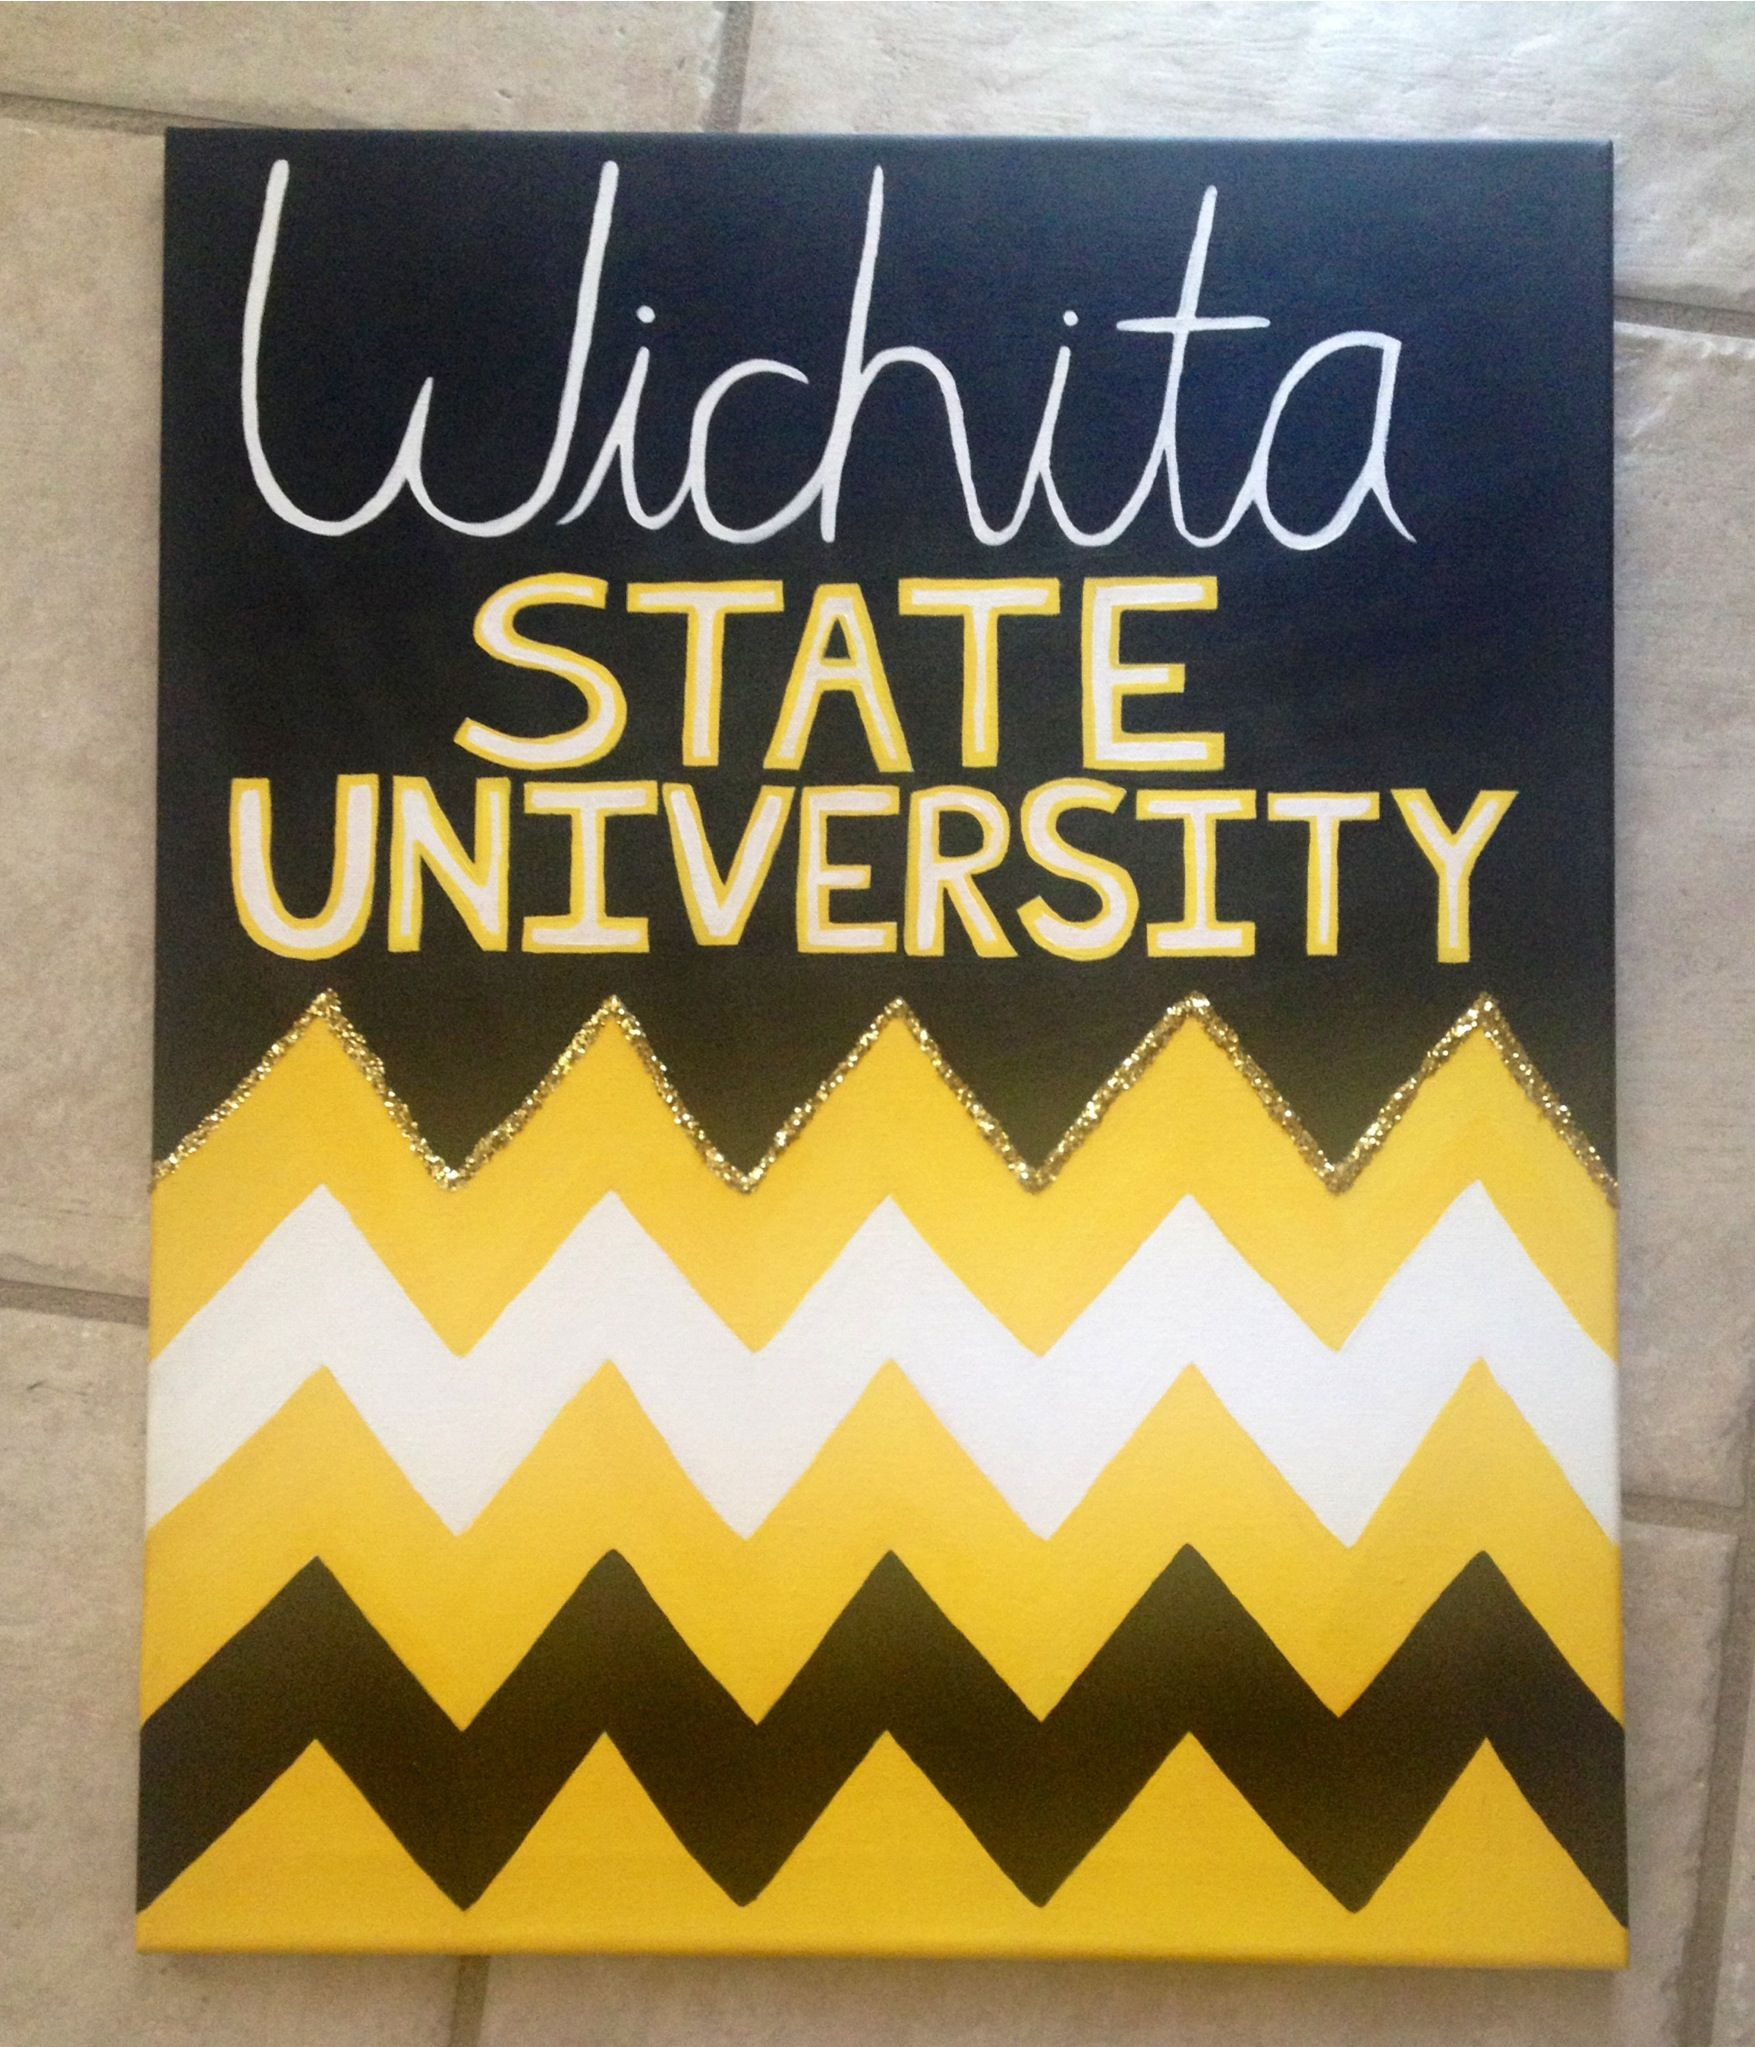 DIY canvas art to hang on dorm room wall... Change it to Washburn ...